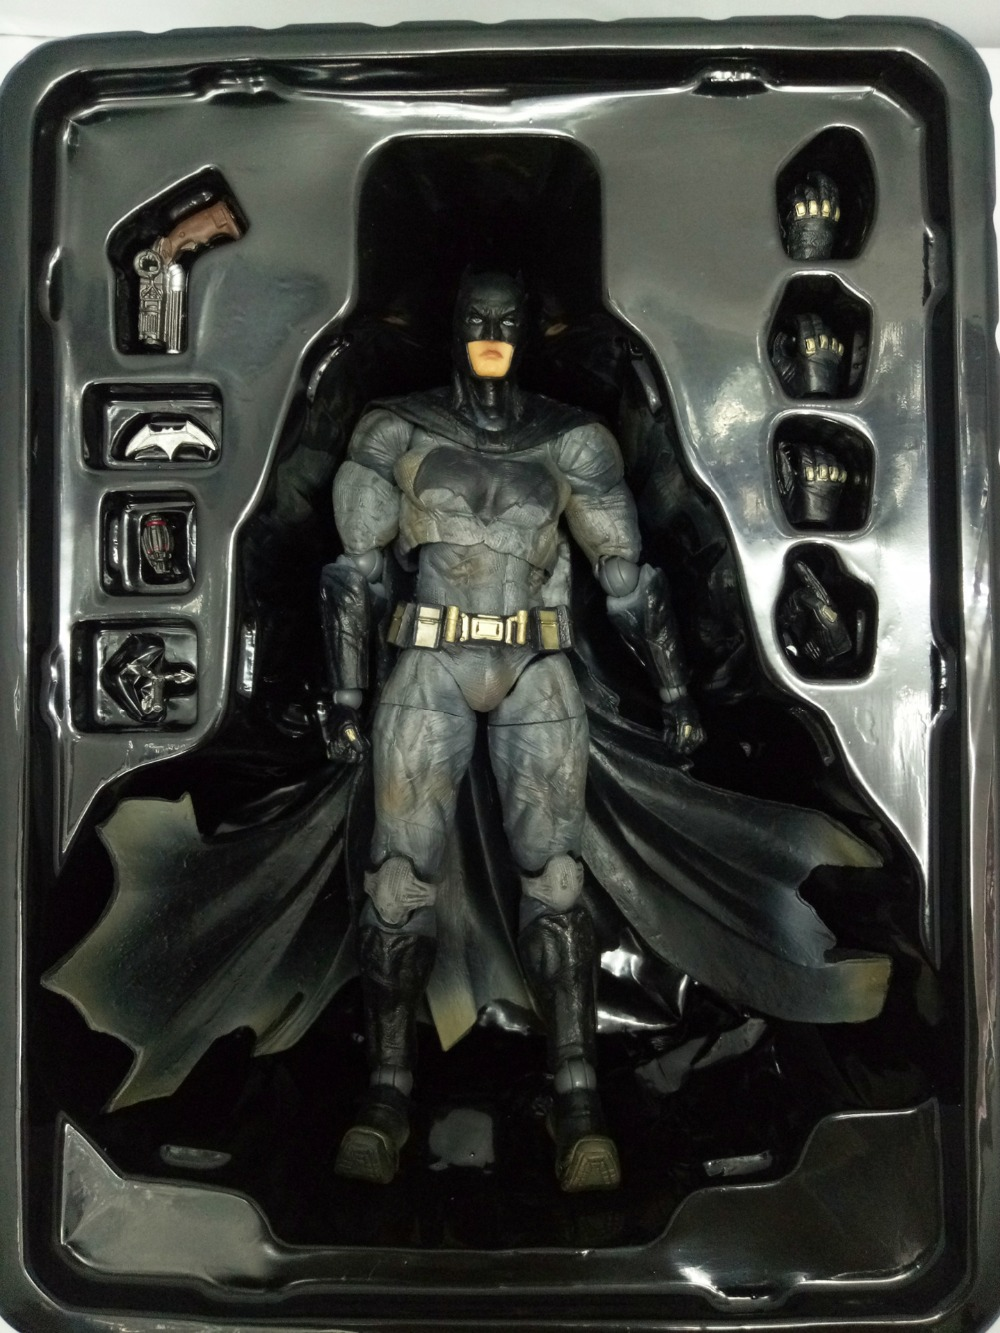 DC Comics Superhero Movie Batman Limited Ver Action Figure Playarts Kai figurine kids hot Toys 27cm Model Play arts juguetes xinduplan dc comics play arts justice league movie batman bruce wayne movable action figure toys 27cm kids collection model 0271